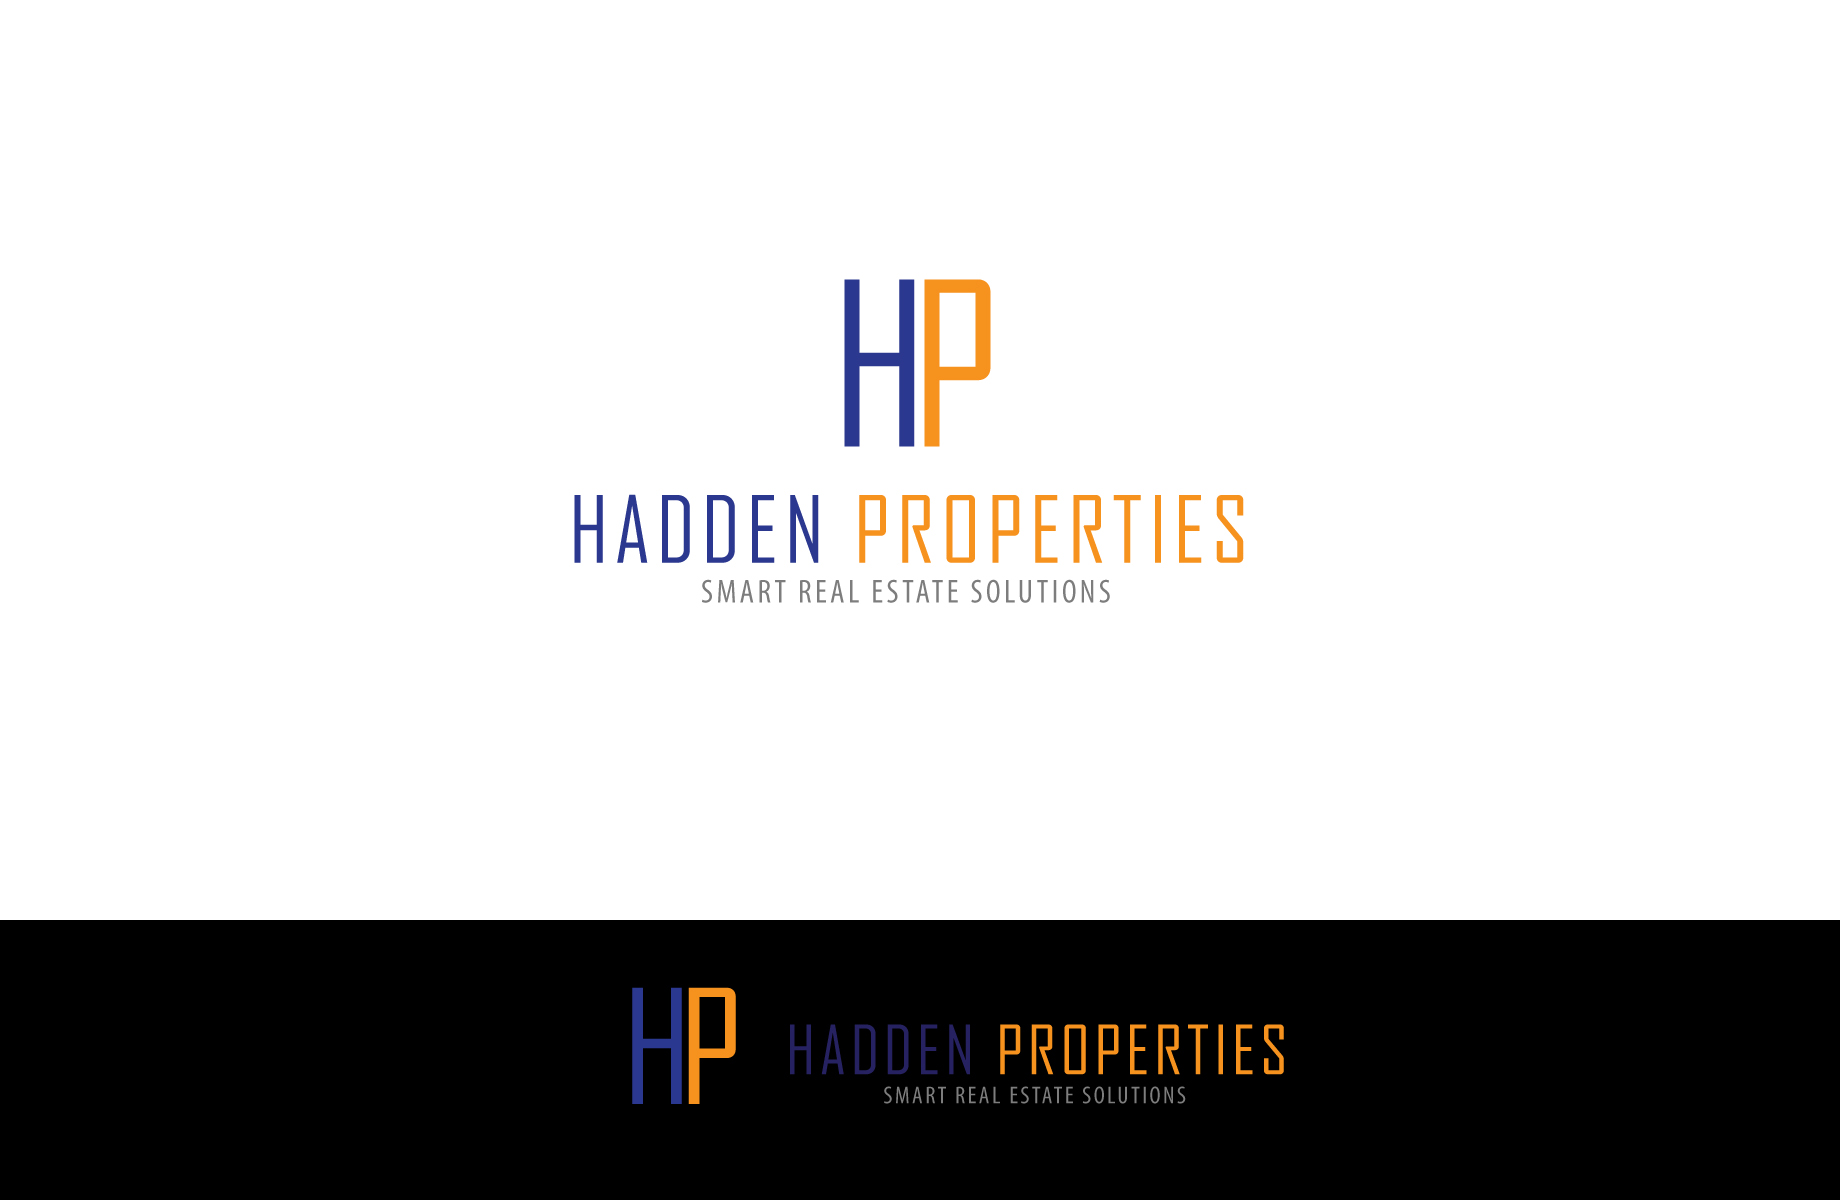 Logo Design by Jan Chua - Entry No. 36 in the Logo Design Contest Artistic Logo Design for Hadden Properties.